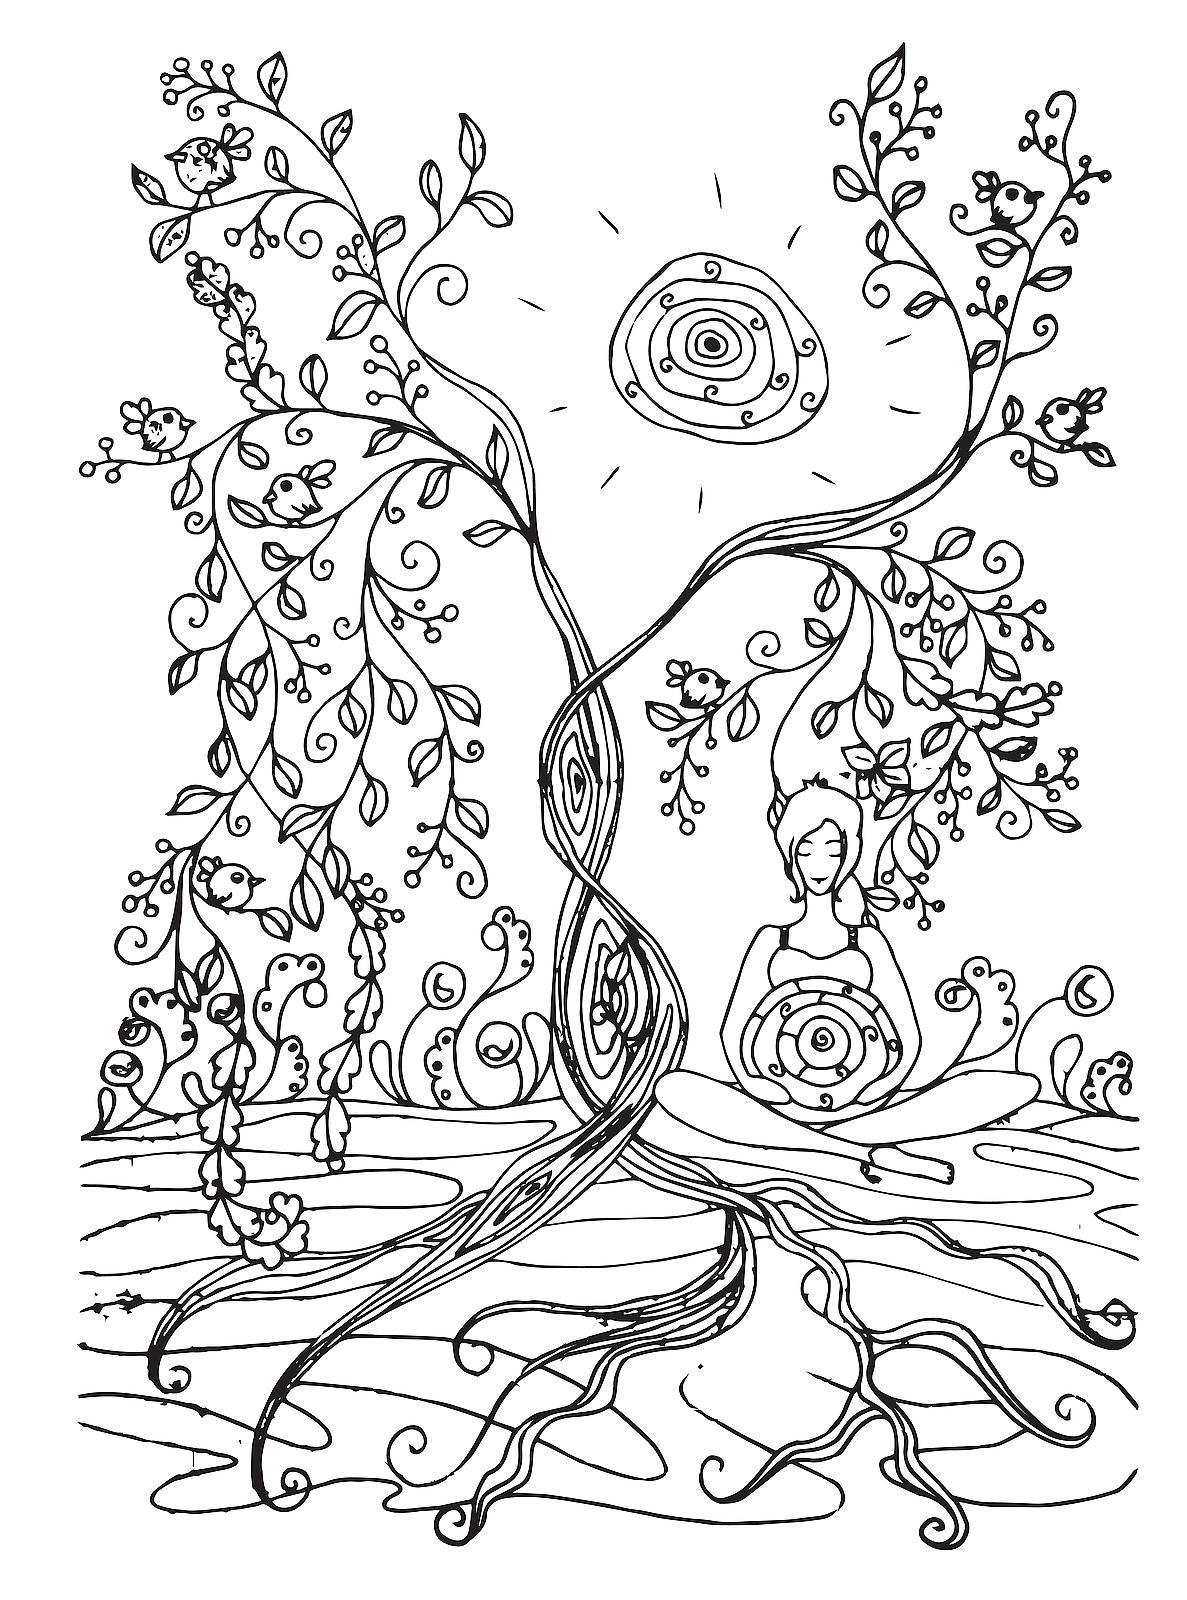 Baby shower coloring pages - timeless-miracle.com | 1600x1187